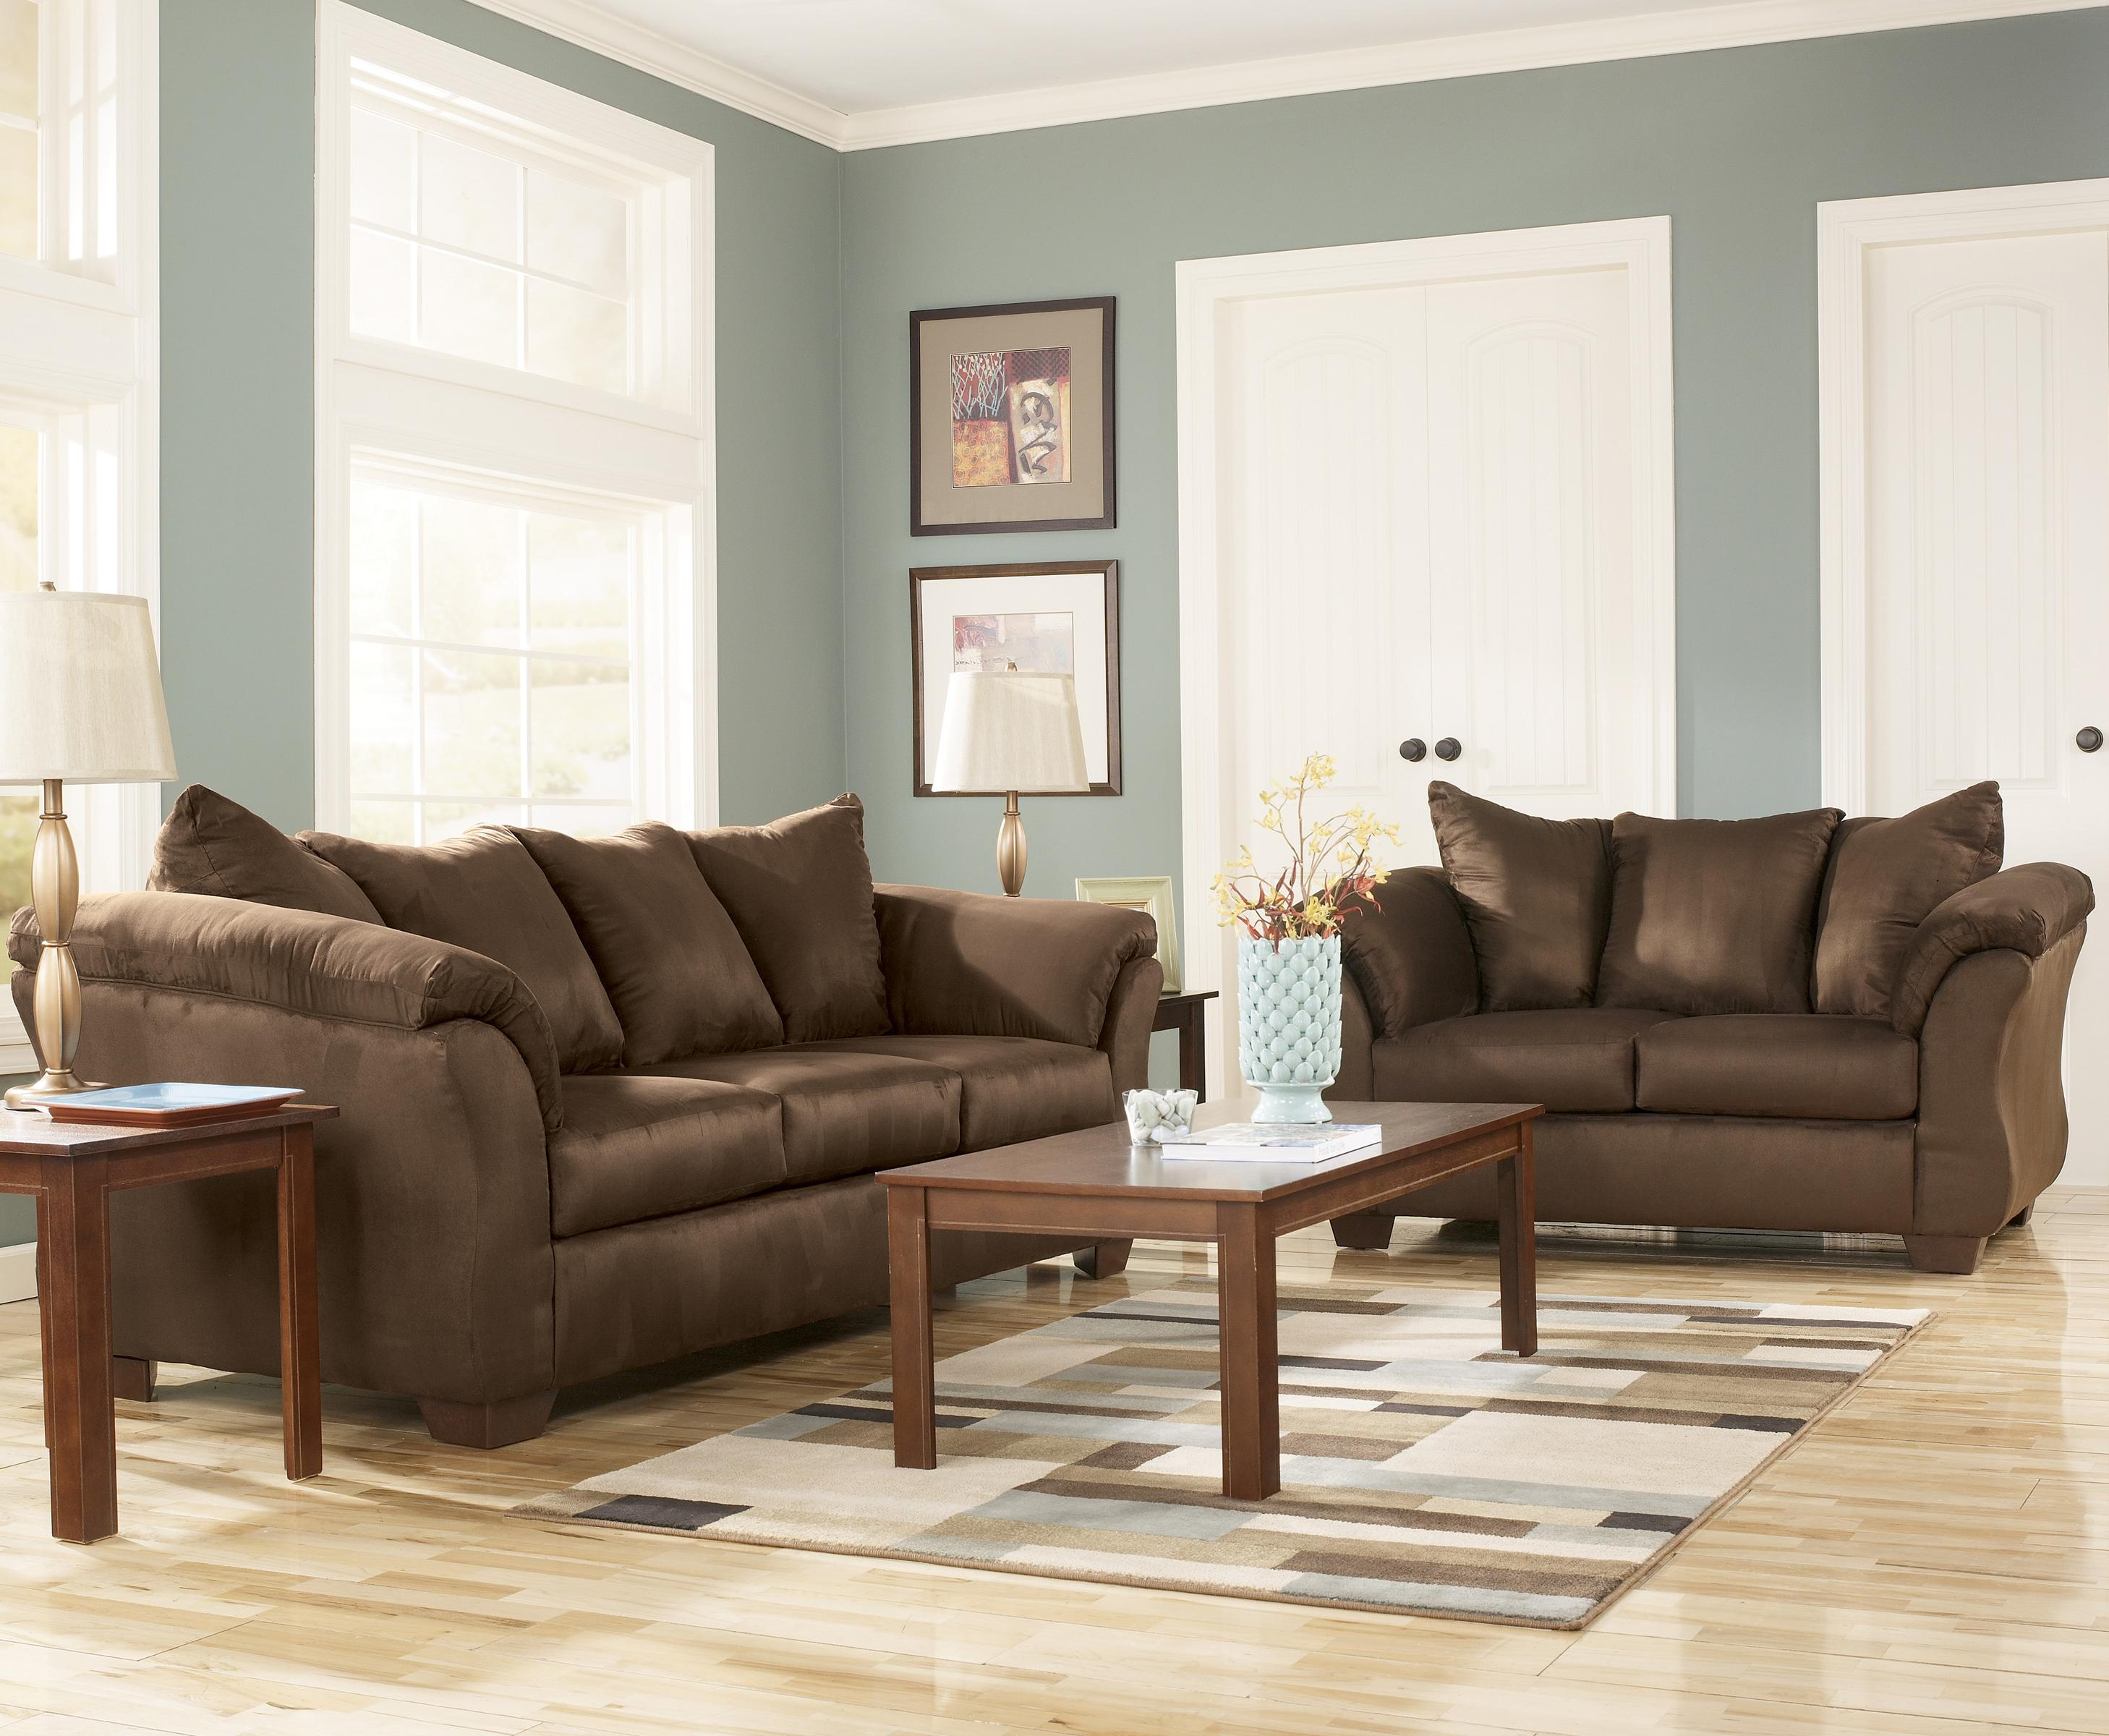 Ashley Signature Design Darcy   Cafe Contemporary Sectional Sofa with  Sweeping Pillow Arms   Rooms and Rest   Sectional SofasAshley Signature Design Darcy   Cafe Contemporary Sectional Sofa  . Fabric Living Room Sets. Home Design Ideas